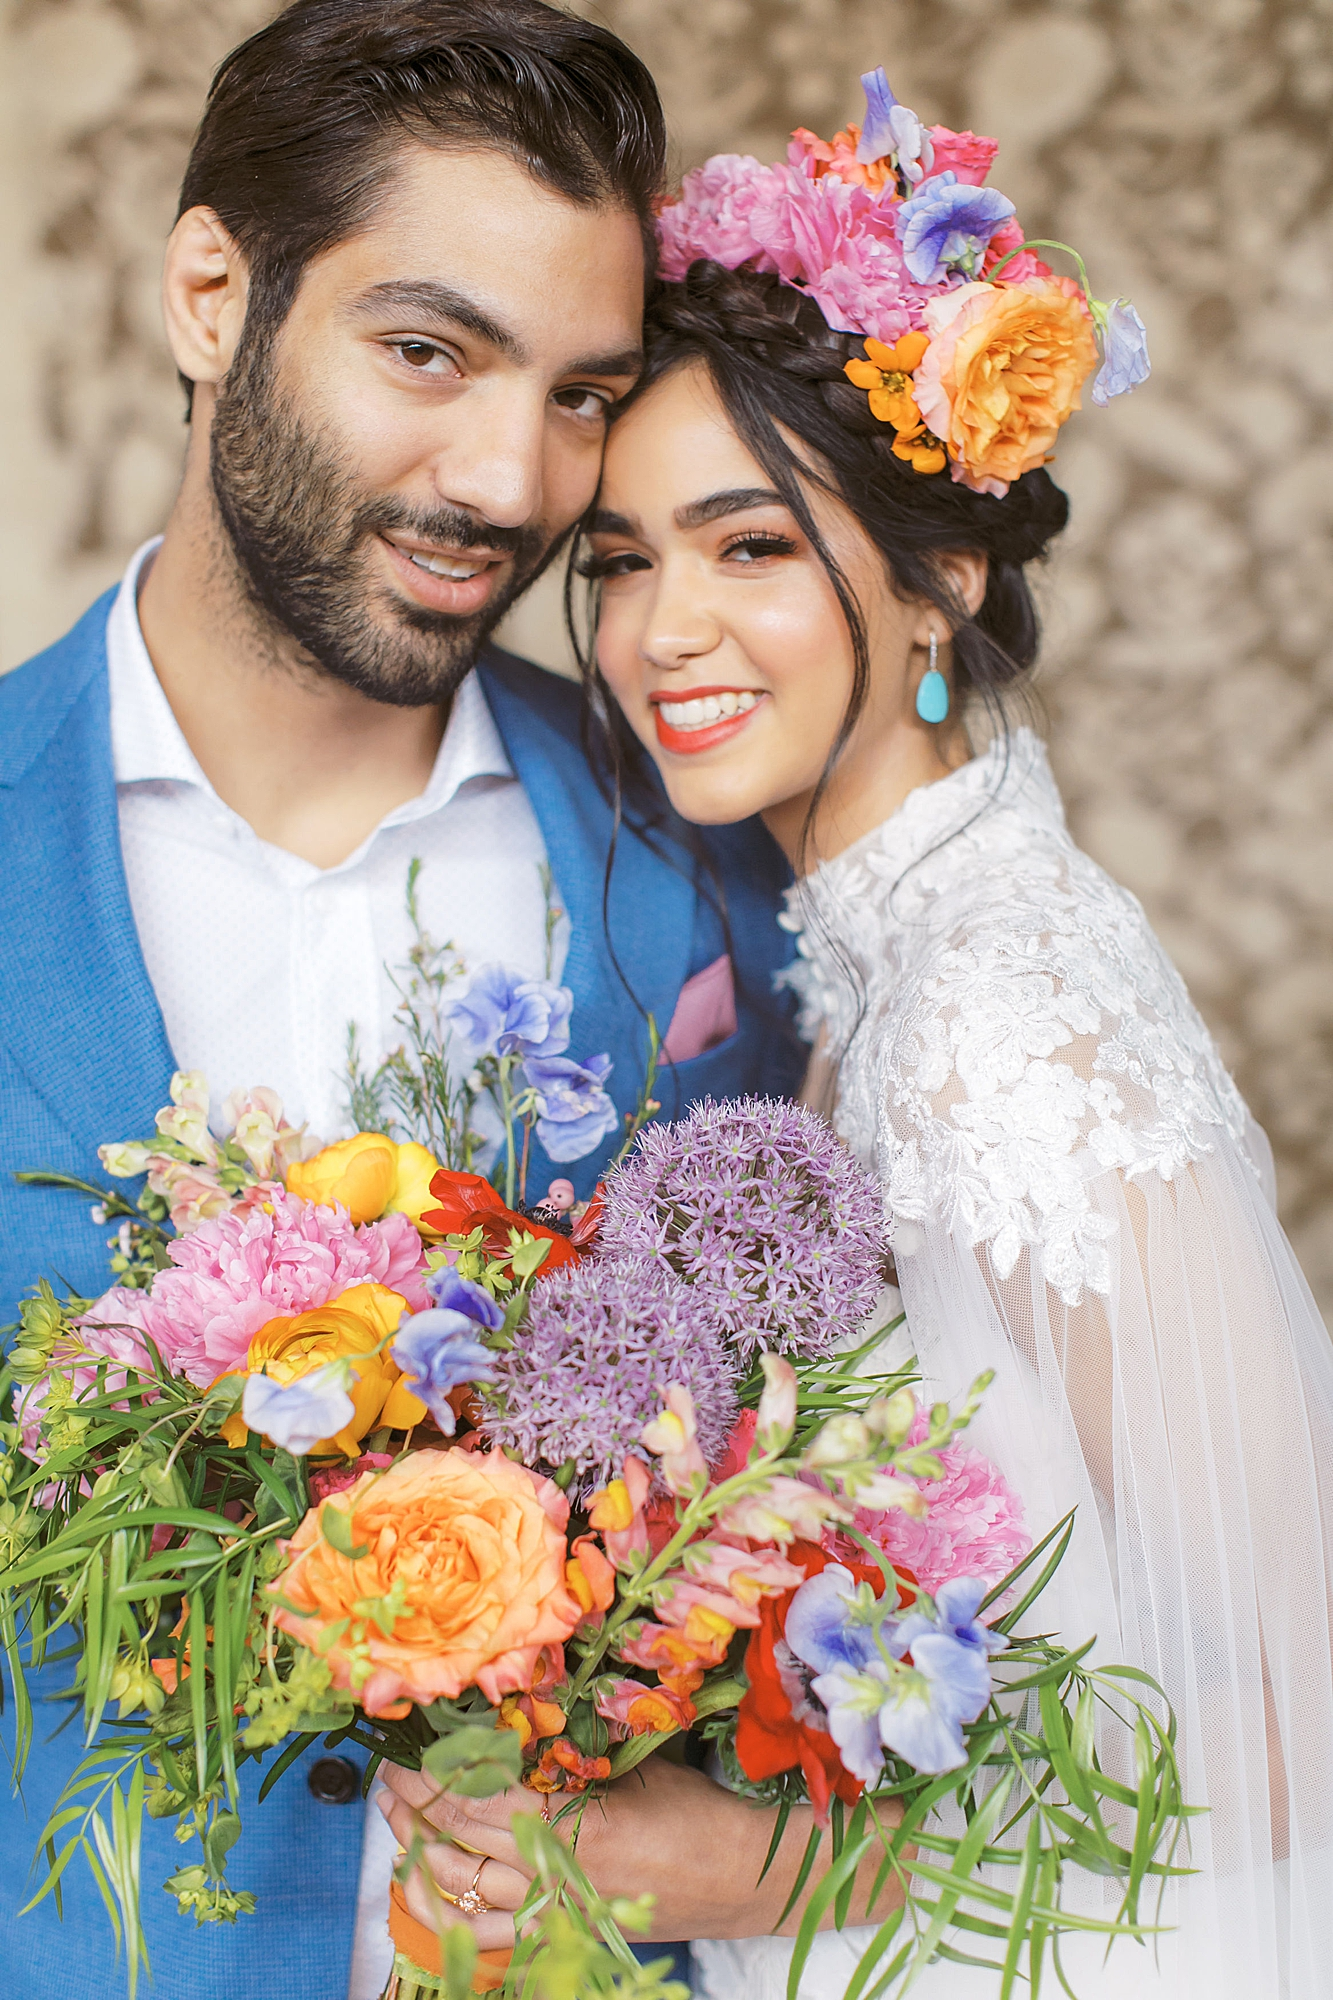 Vibrant and Colorful Frida Kahlo Inspired Wedding Photography by Magdalena Studios 0019